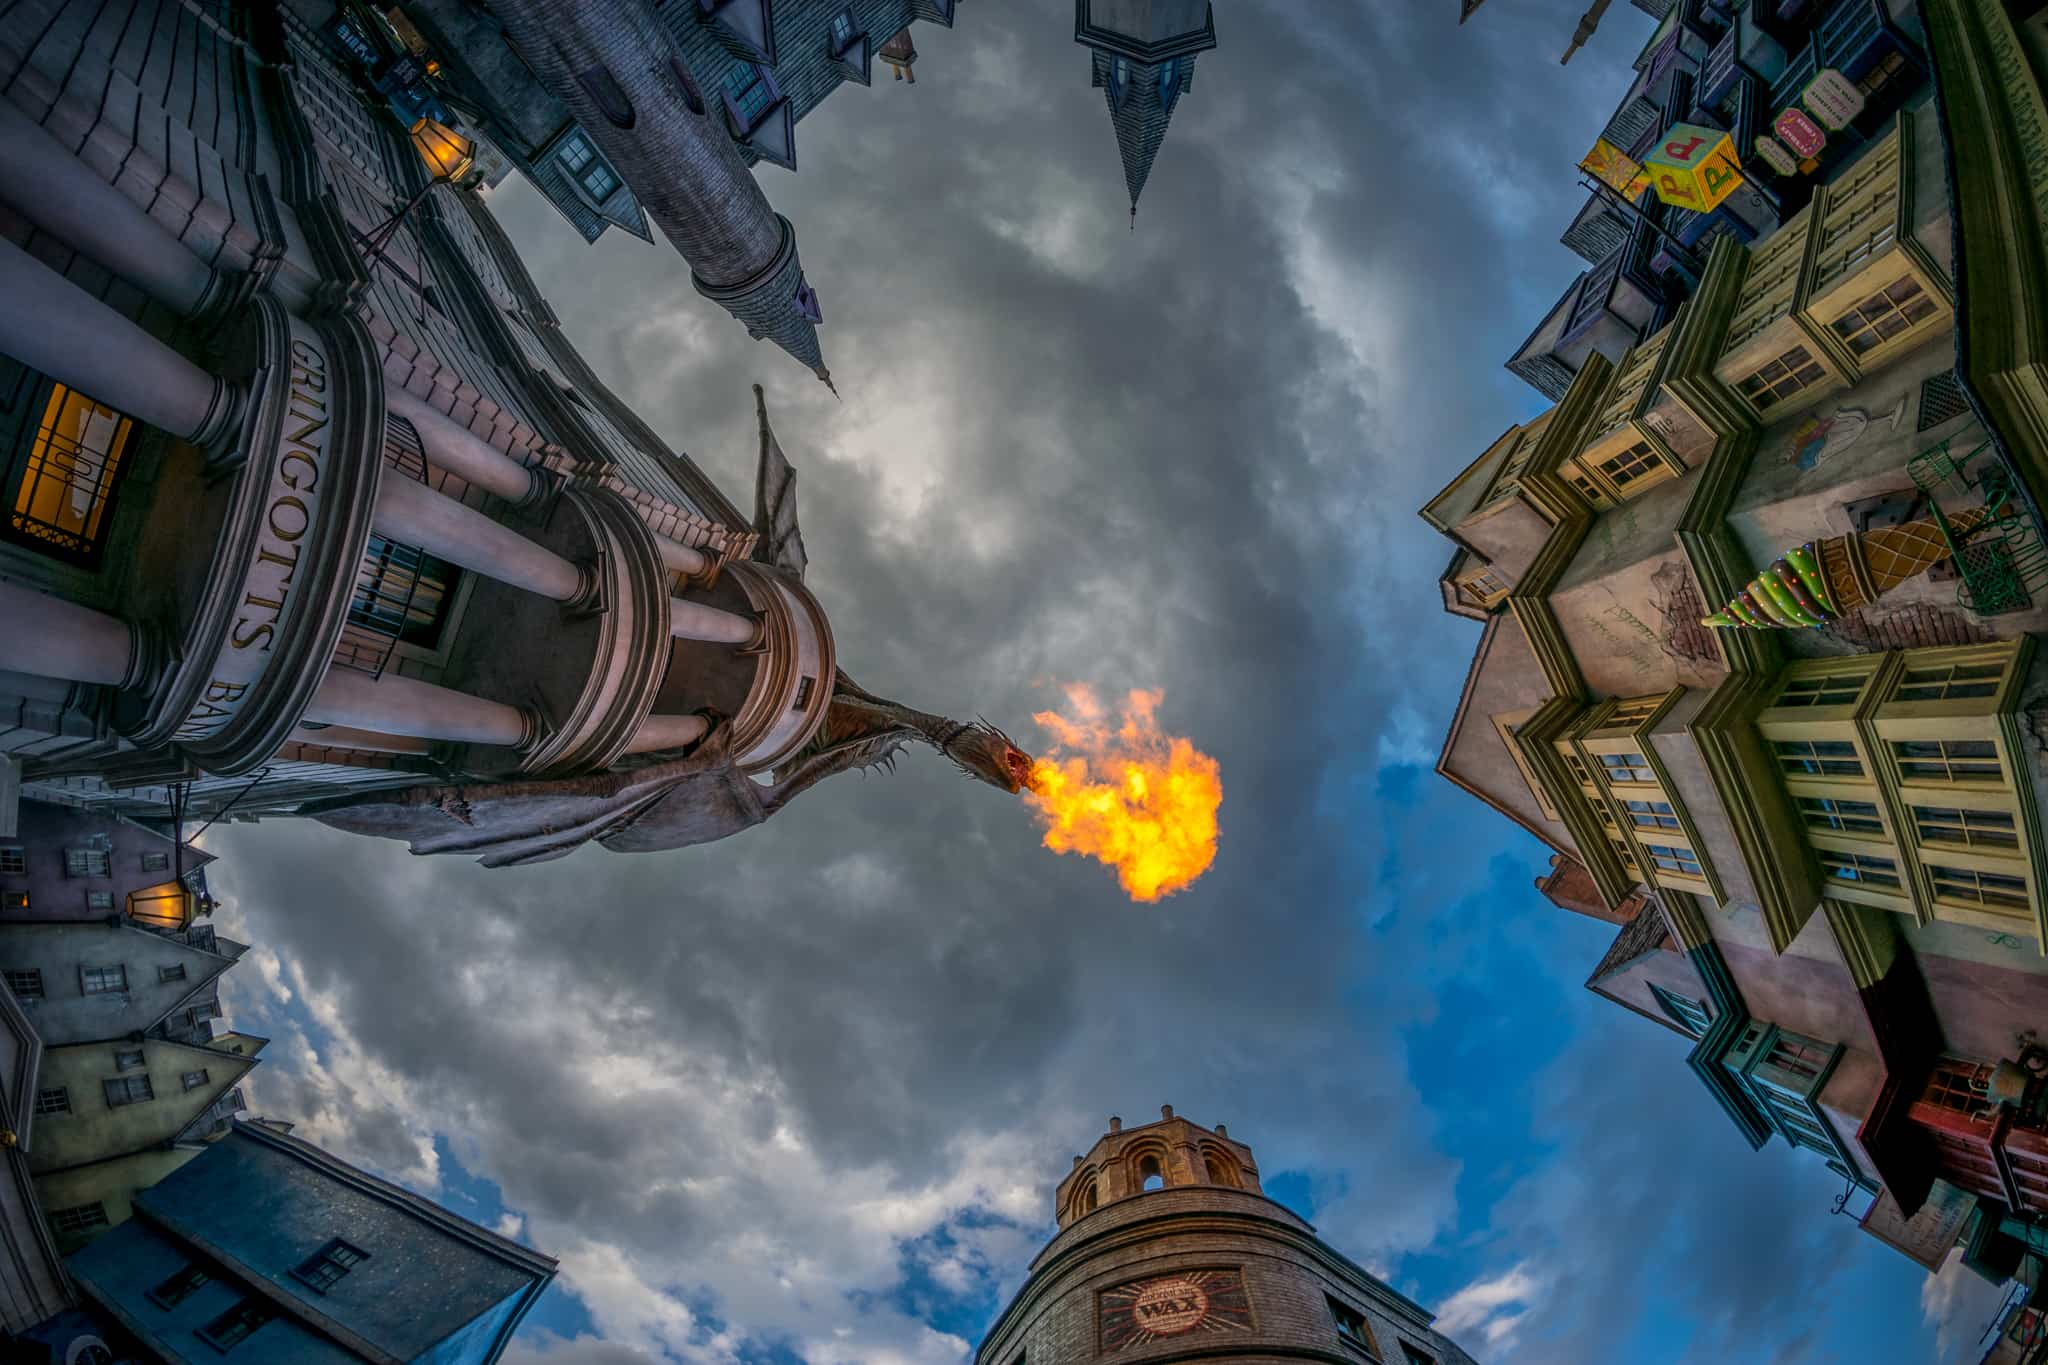 9 different angles you haven't seen of the Gringotts Dragon